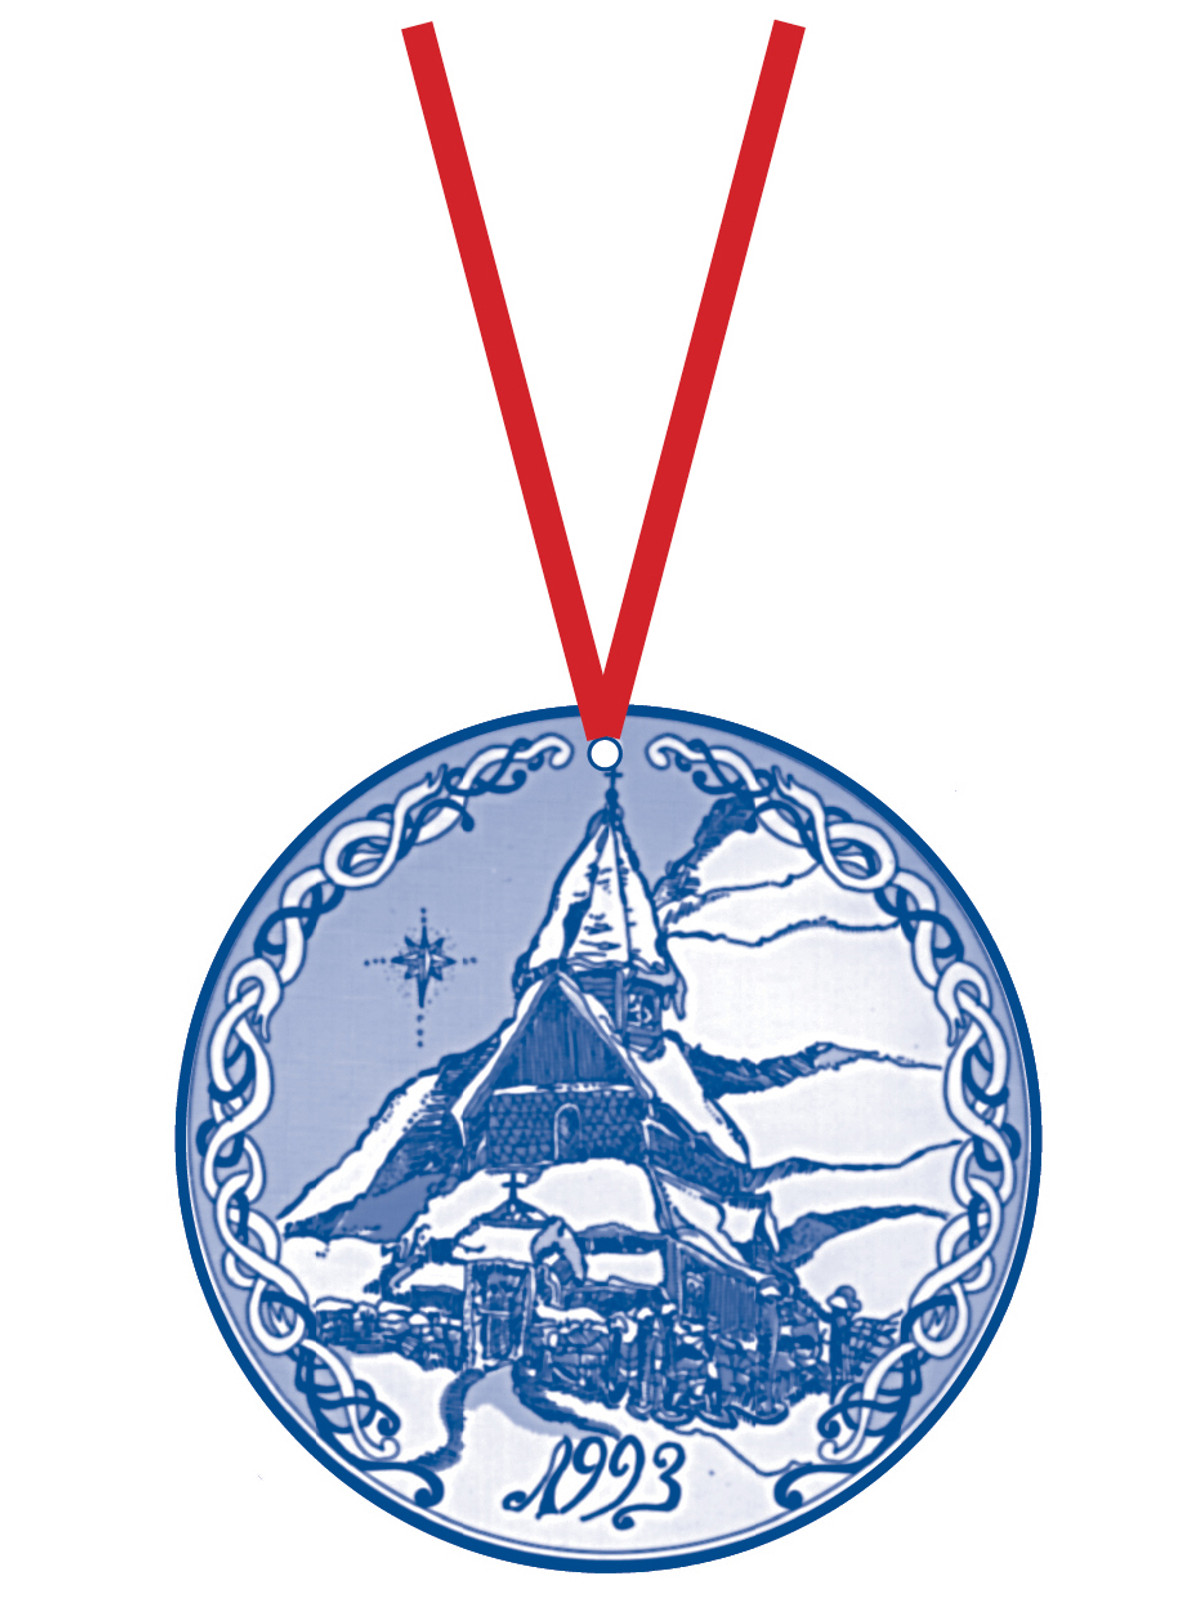 1993 Stav Church Ornament - Urness. Made by Norse Traditions and available at The Nordic Shop.